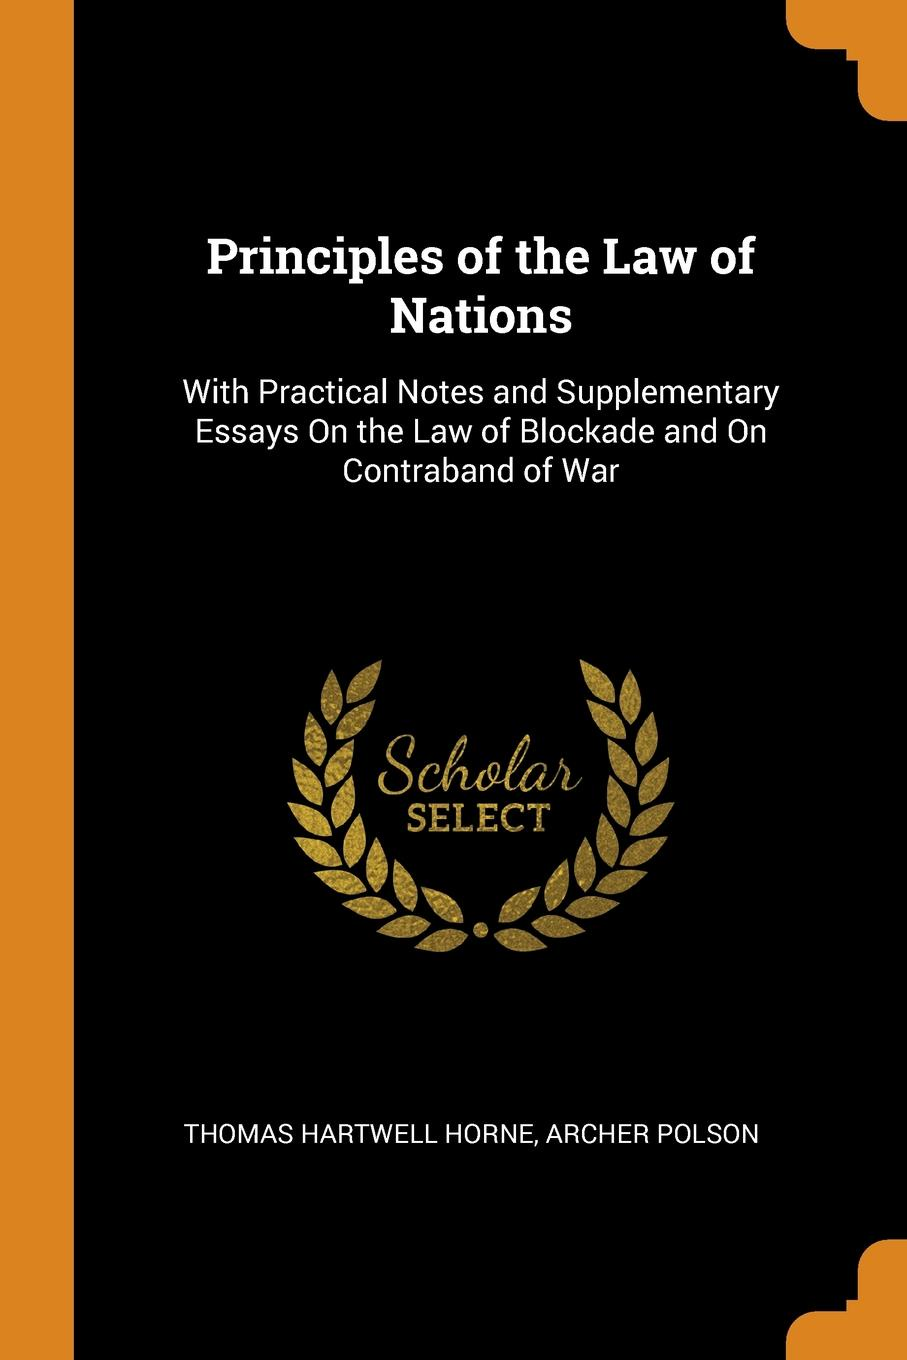 Principles of the Law of Nations. With Practical Notes and Supplementary Essays On the Law of Blockade and On Contraband of War. Thomas Hartwell Horne, Archer Polson